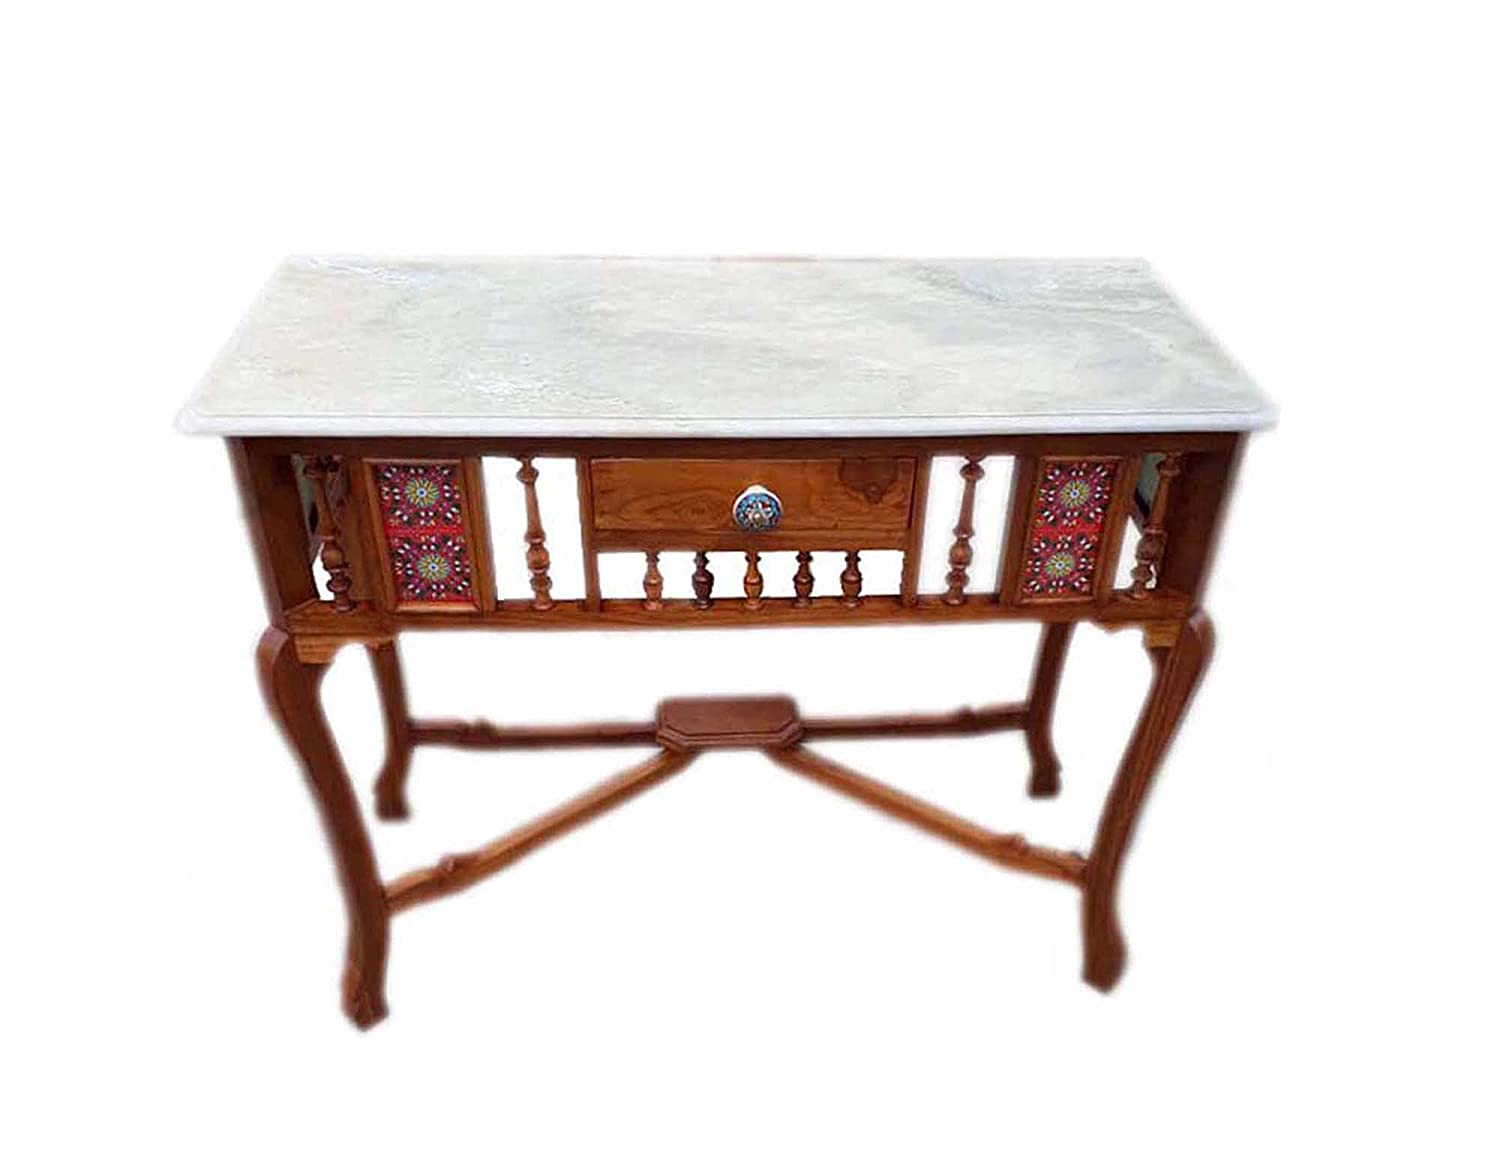 Solid Teak Wood Antique Look Console Table with Marble Top Size : 30x36x15 (HxWxD)